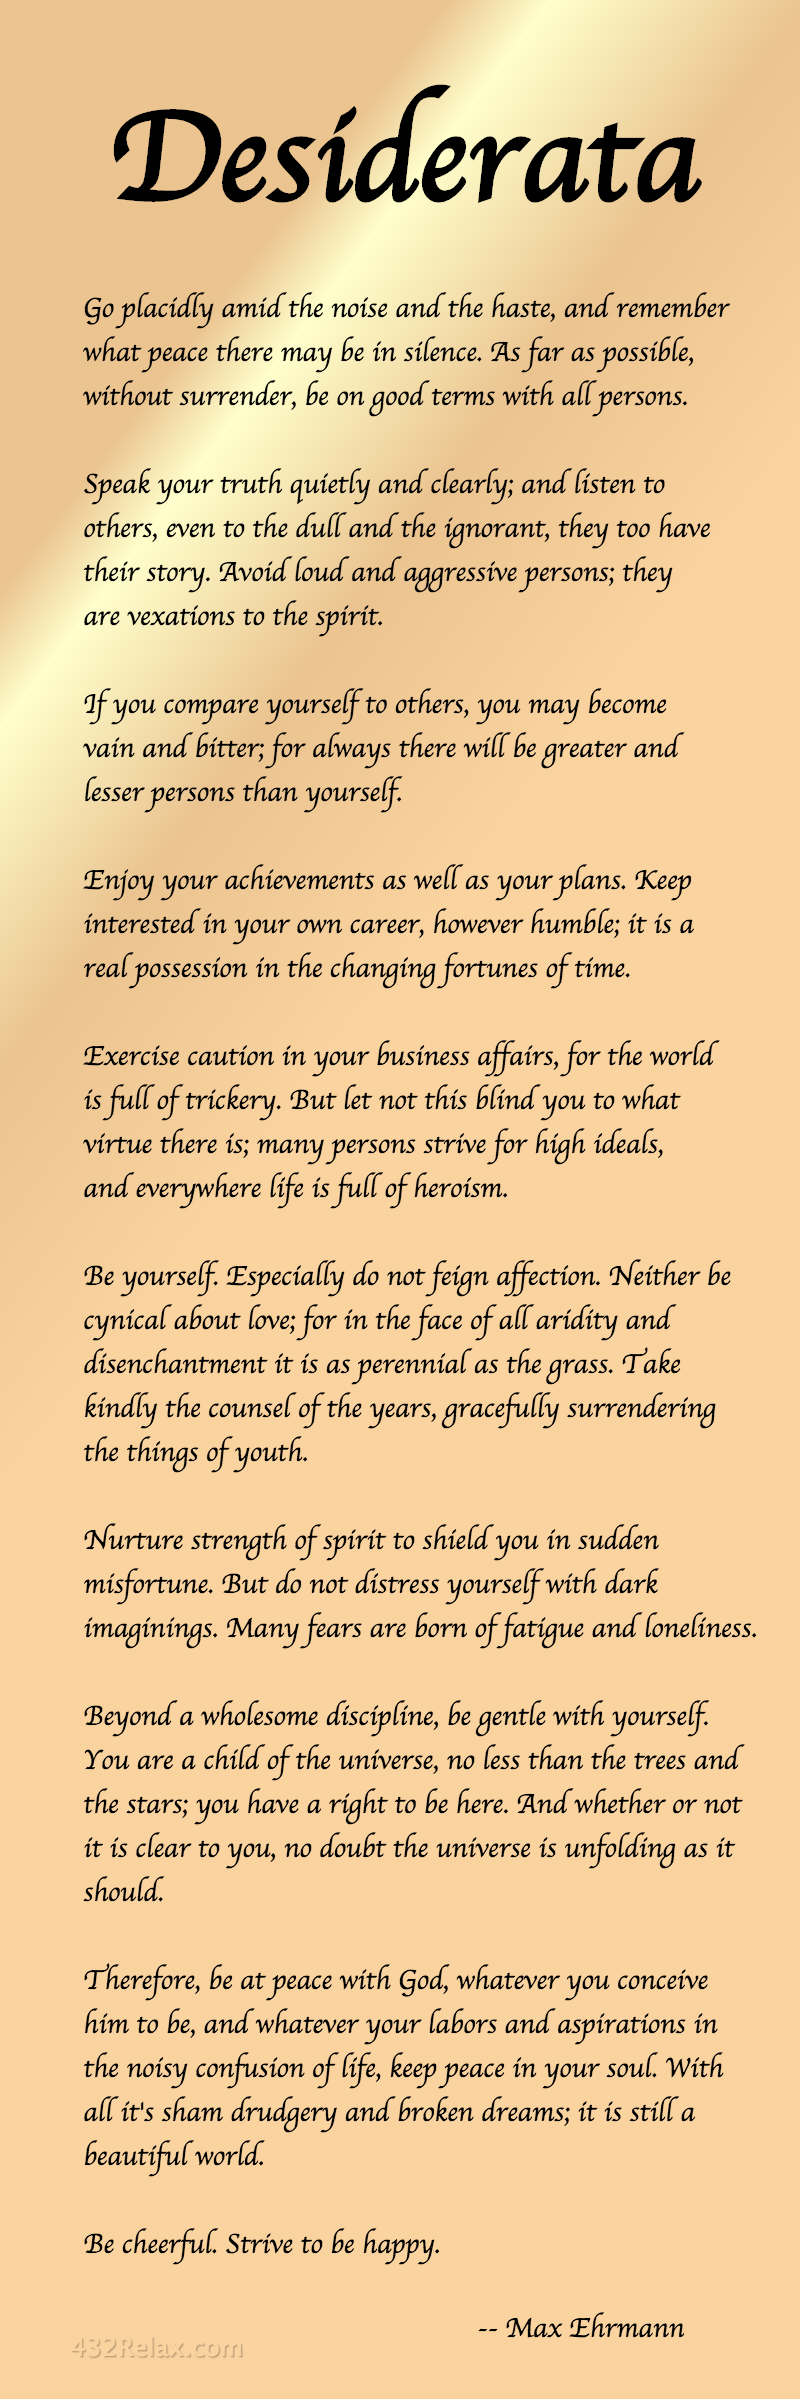 This is the Desiderata Poem by Max Ehrmann - #432Relax